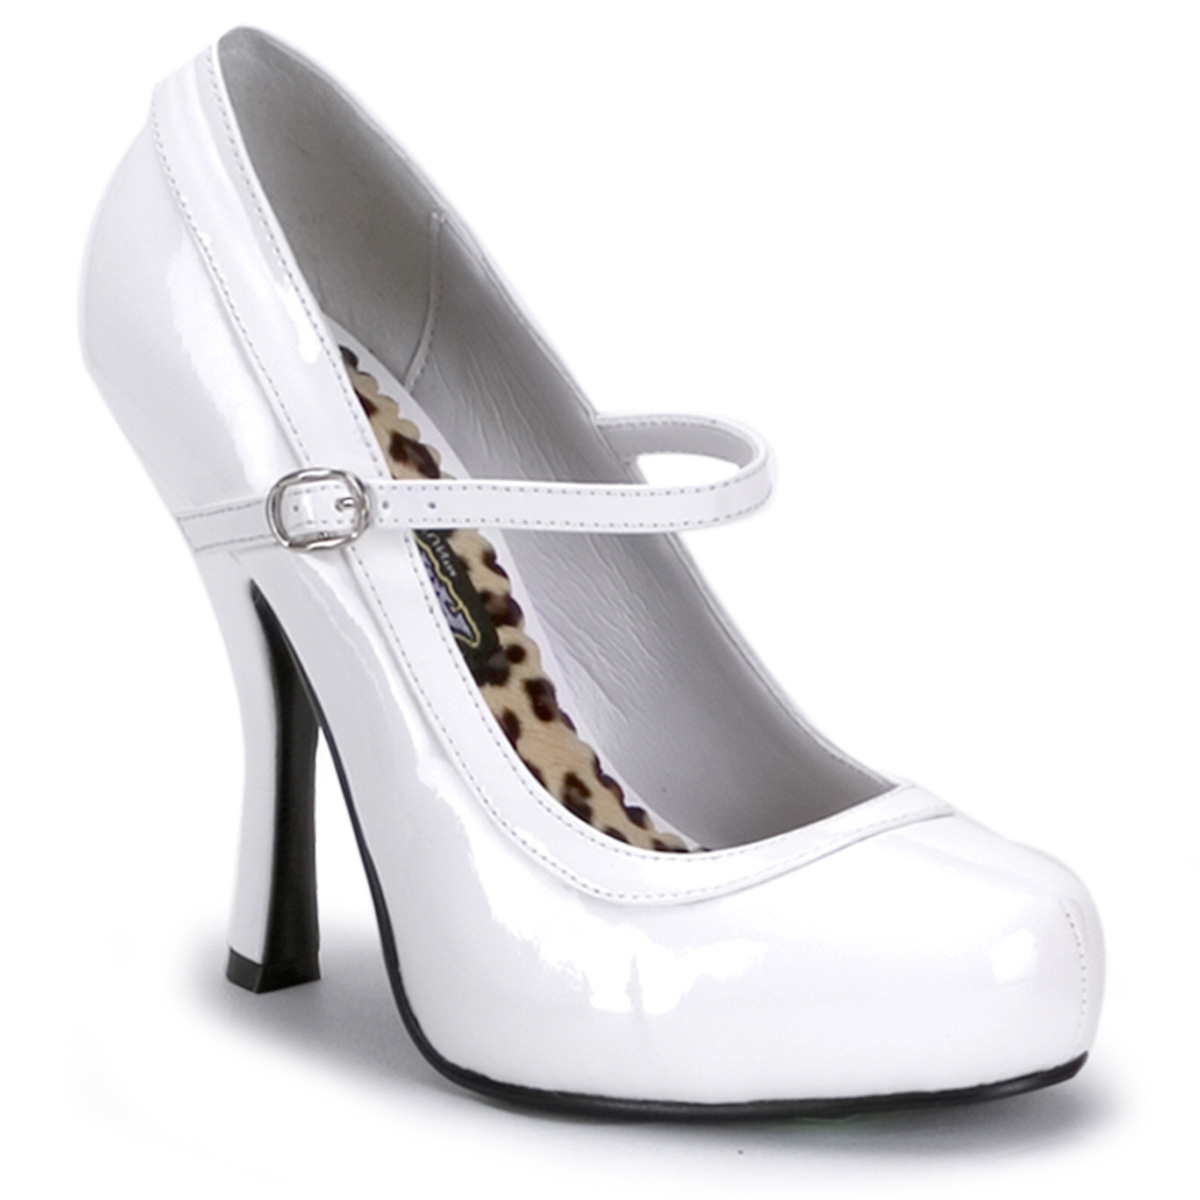 Funtasma by Pleaser Women's Pretty Mary Jane Pump - White Patent at Sears.com